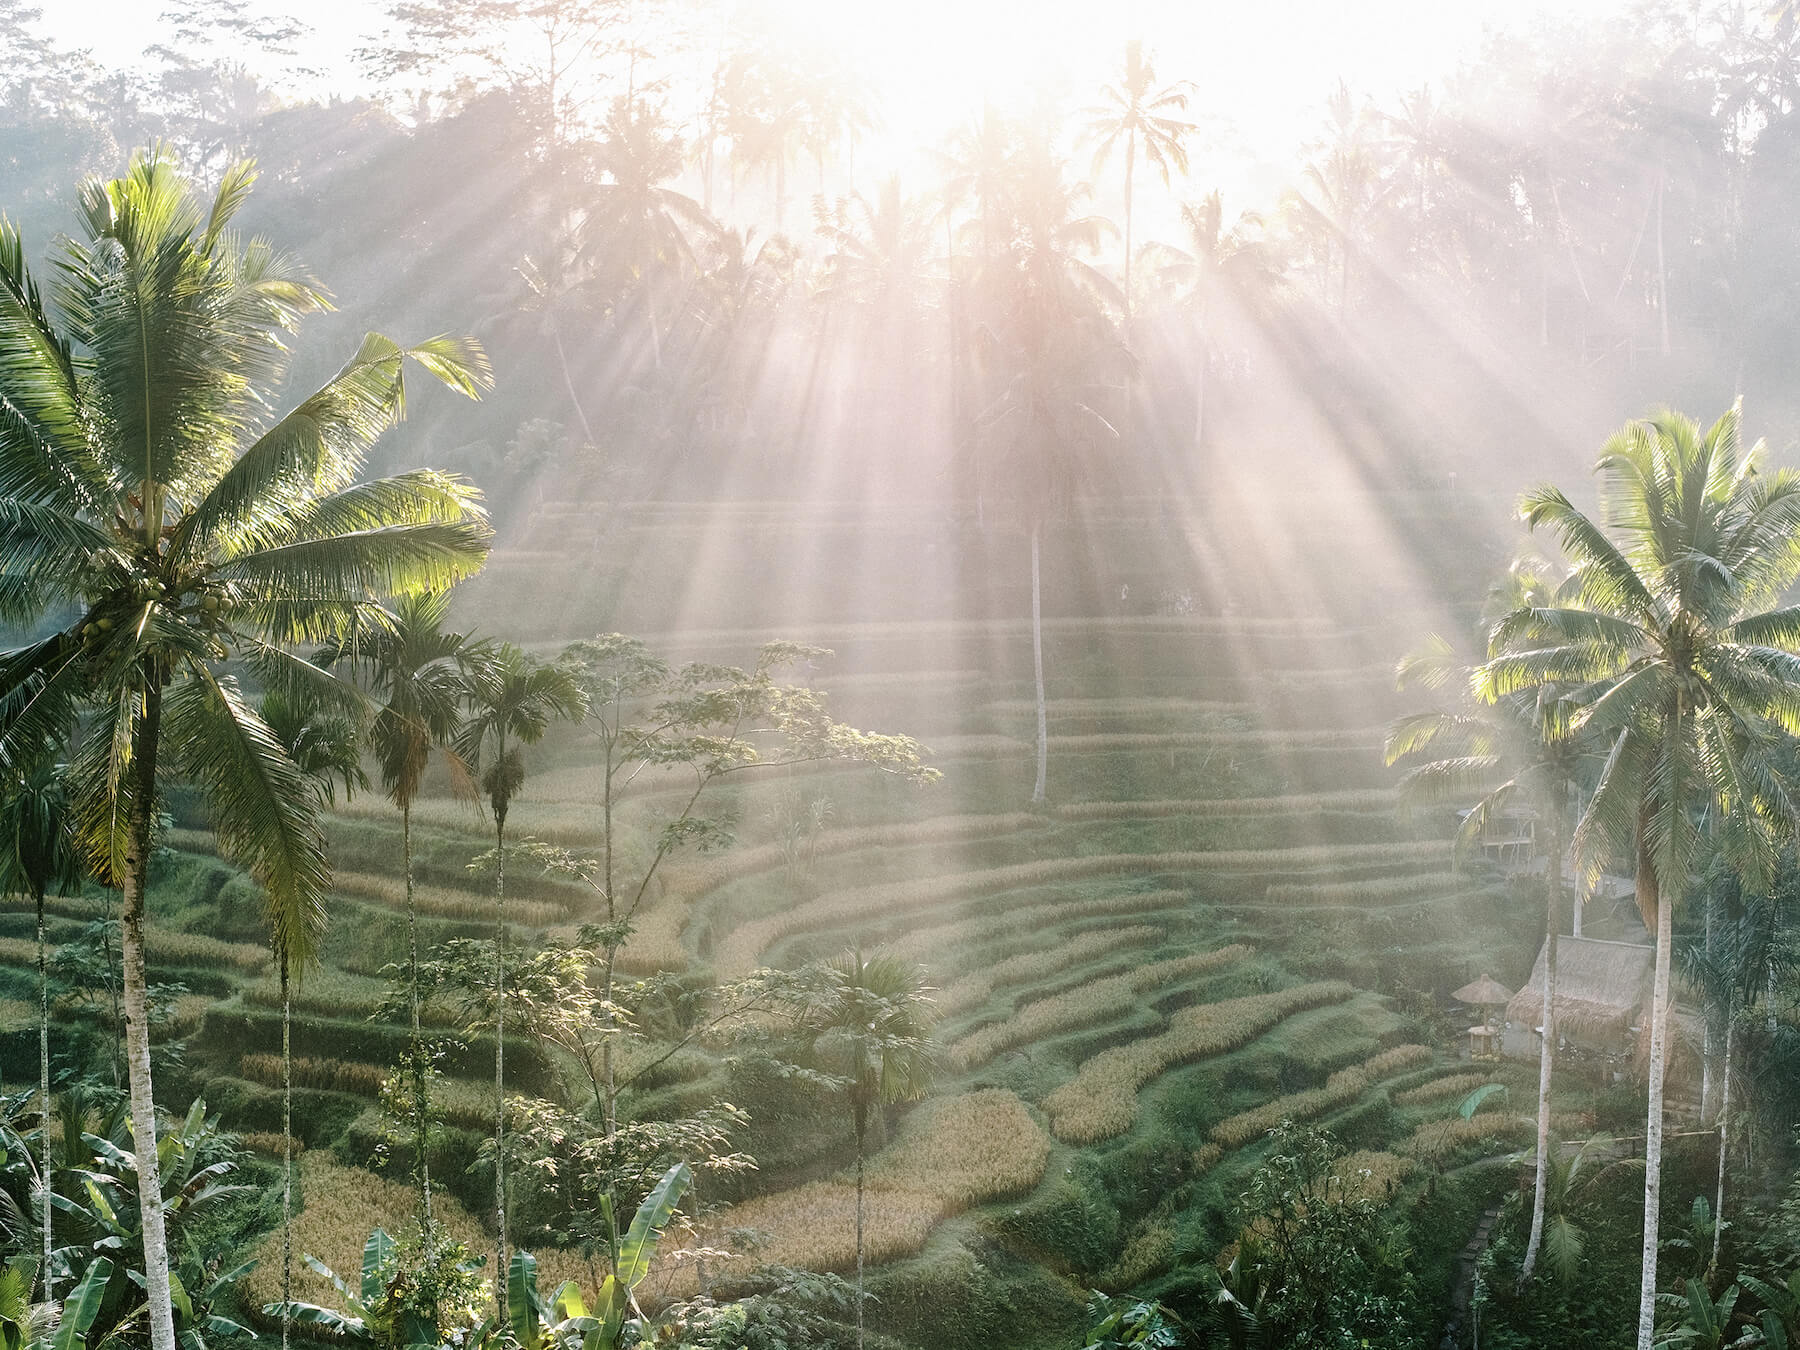 Travel home decor, fine art print of the Tegallalang Rice Terrace in Bali, Indonesia